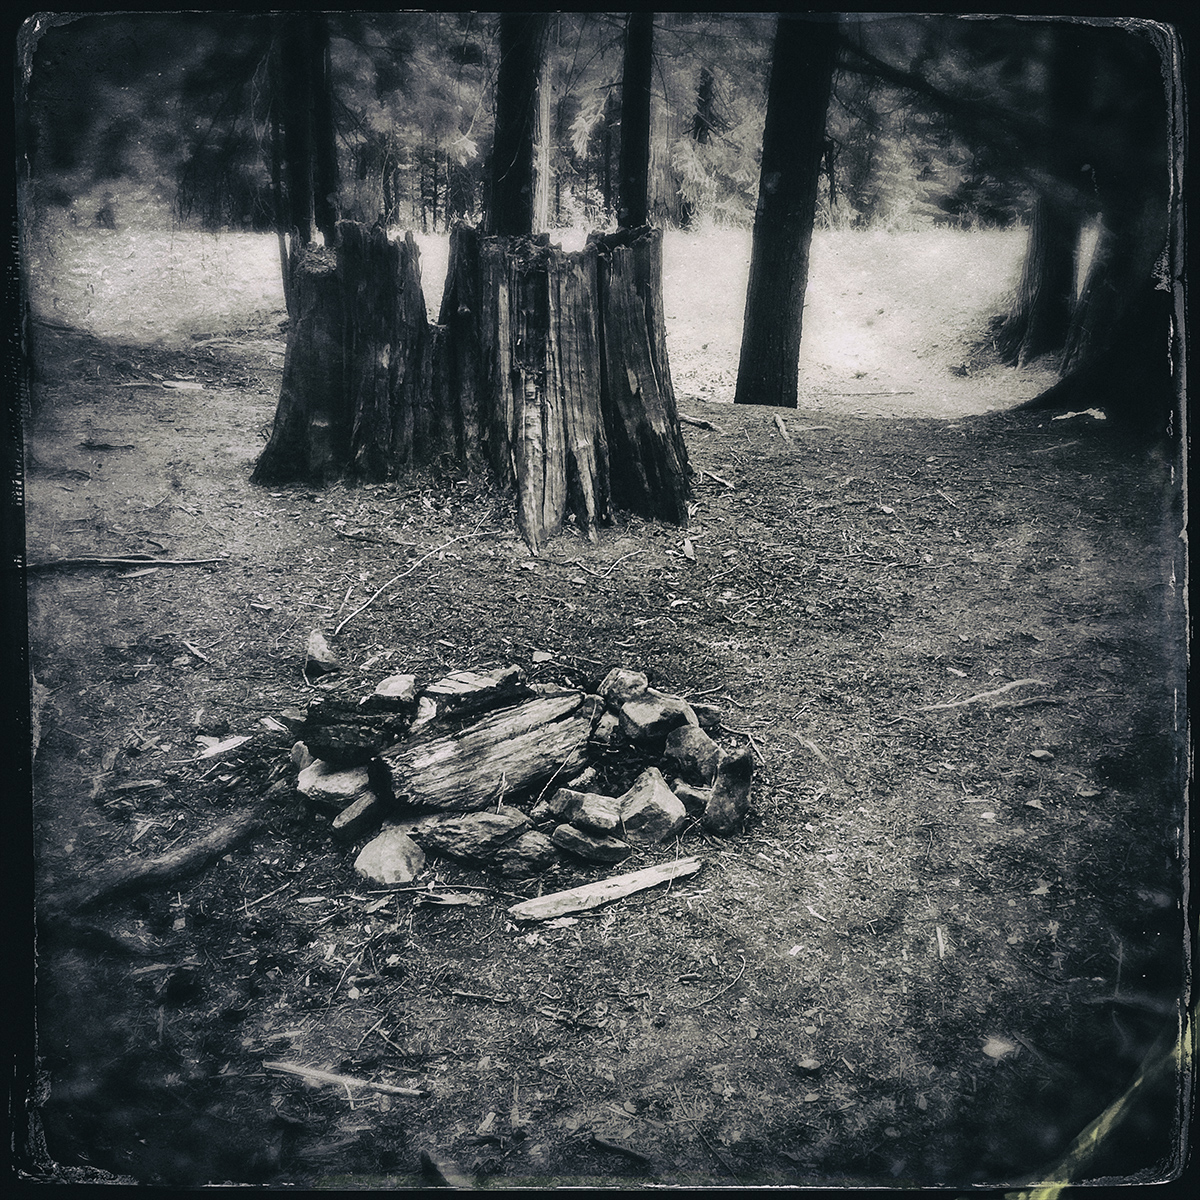 Forest of Lost Trees 18 72dpi.jpg